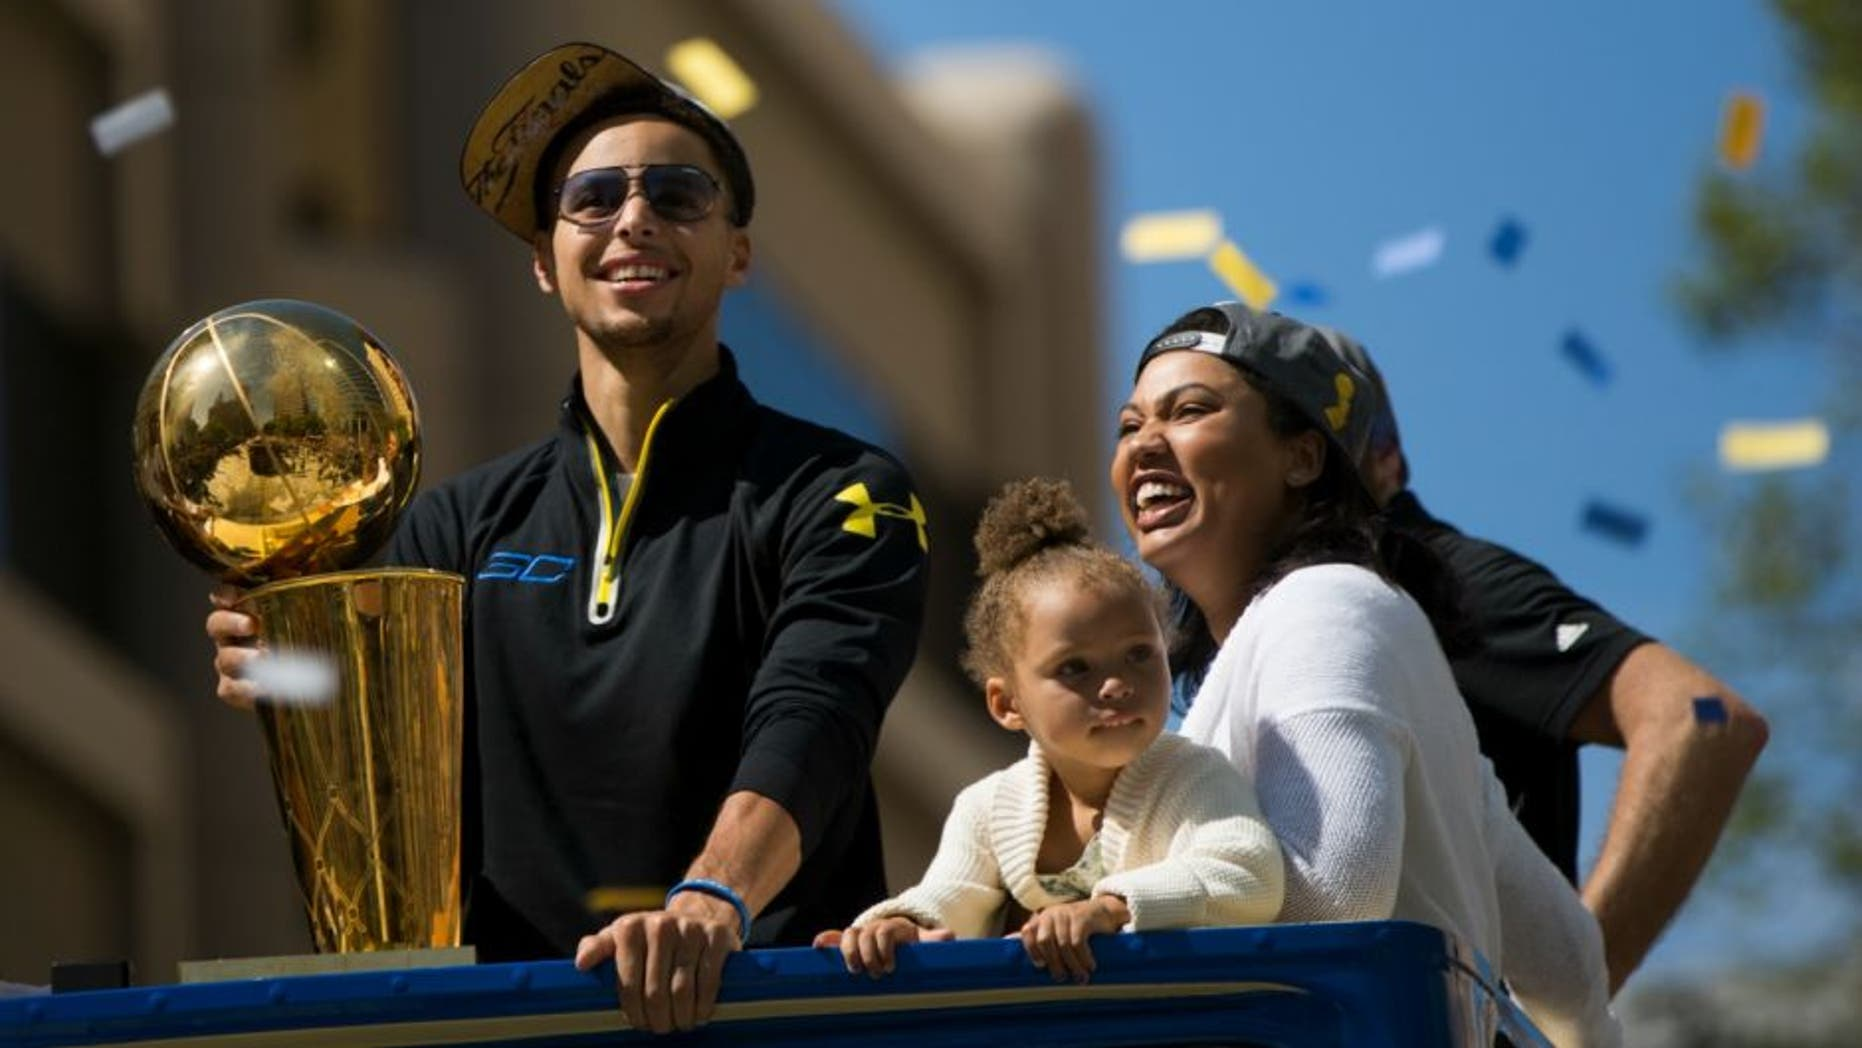 OAKLAND, CA - JUNE 19: (L-R) Stephen Curry #30 of the Golden State Warriors, daughter Riley and wife Ayesha smile during the Golden State Warriors Victory Parade in Oakland, California. Thousands are expected to attend in celebration of the Warriors' first NBA title in 40 years. (Photo by Stephen Lam/Getty Images)